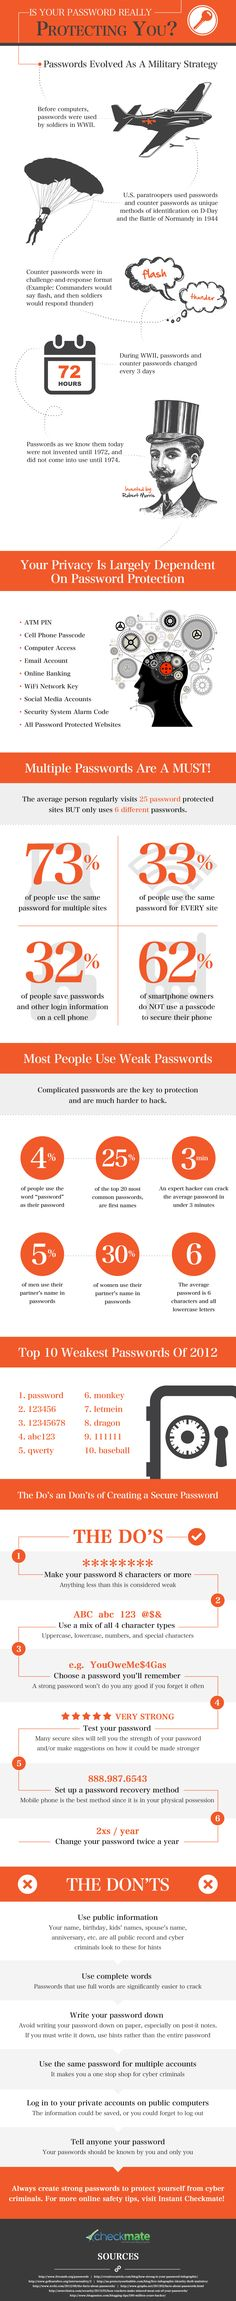 Is Your Password Protecting You?